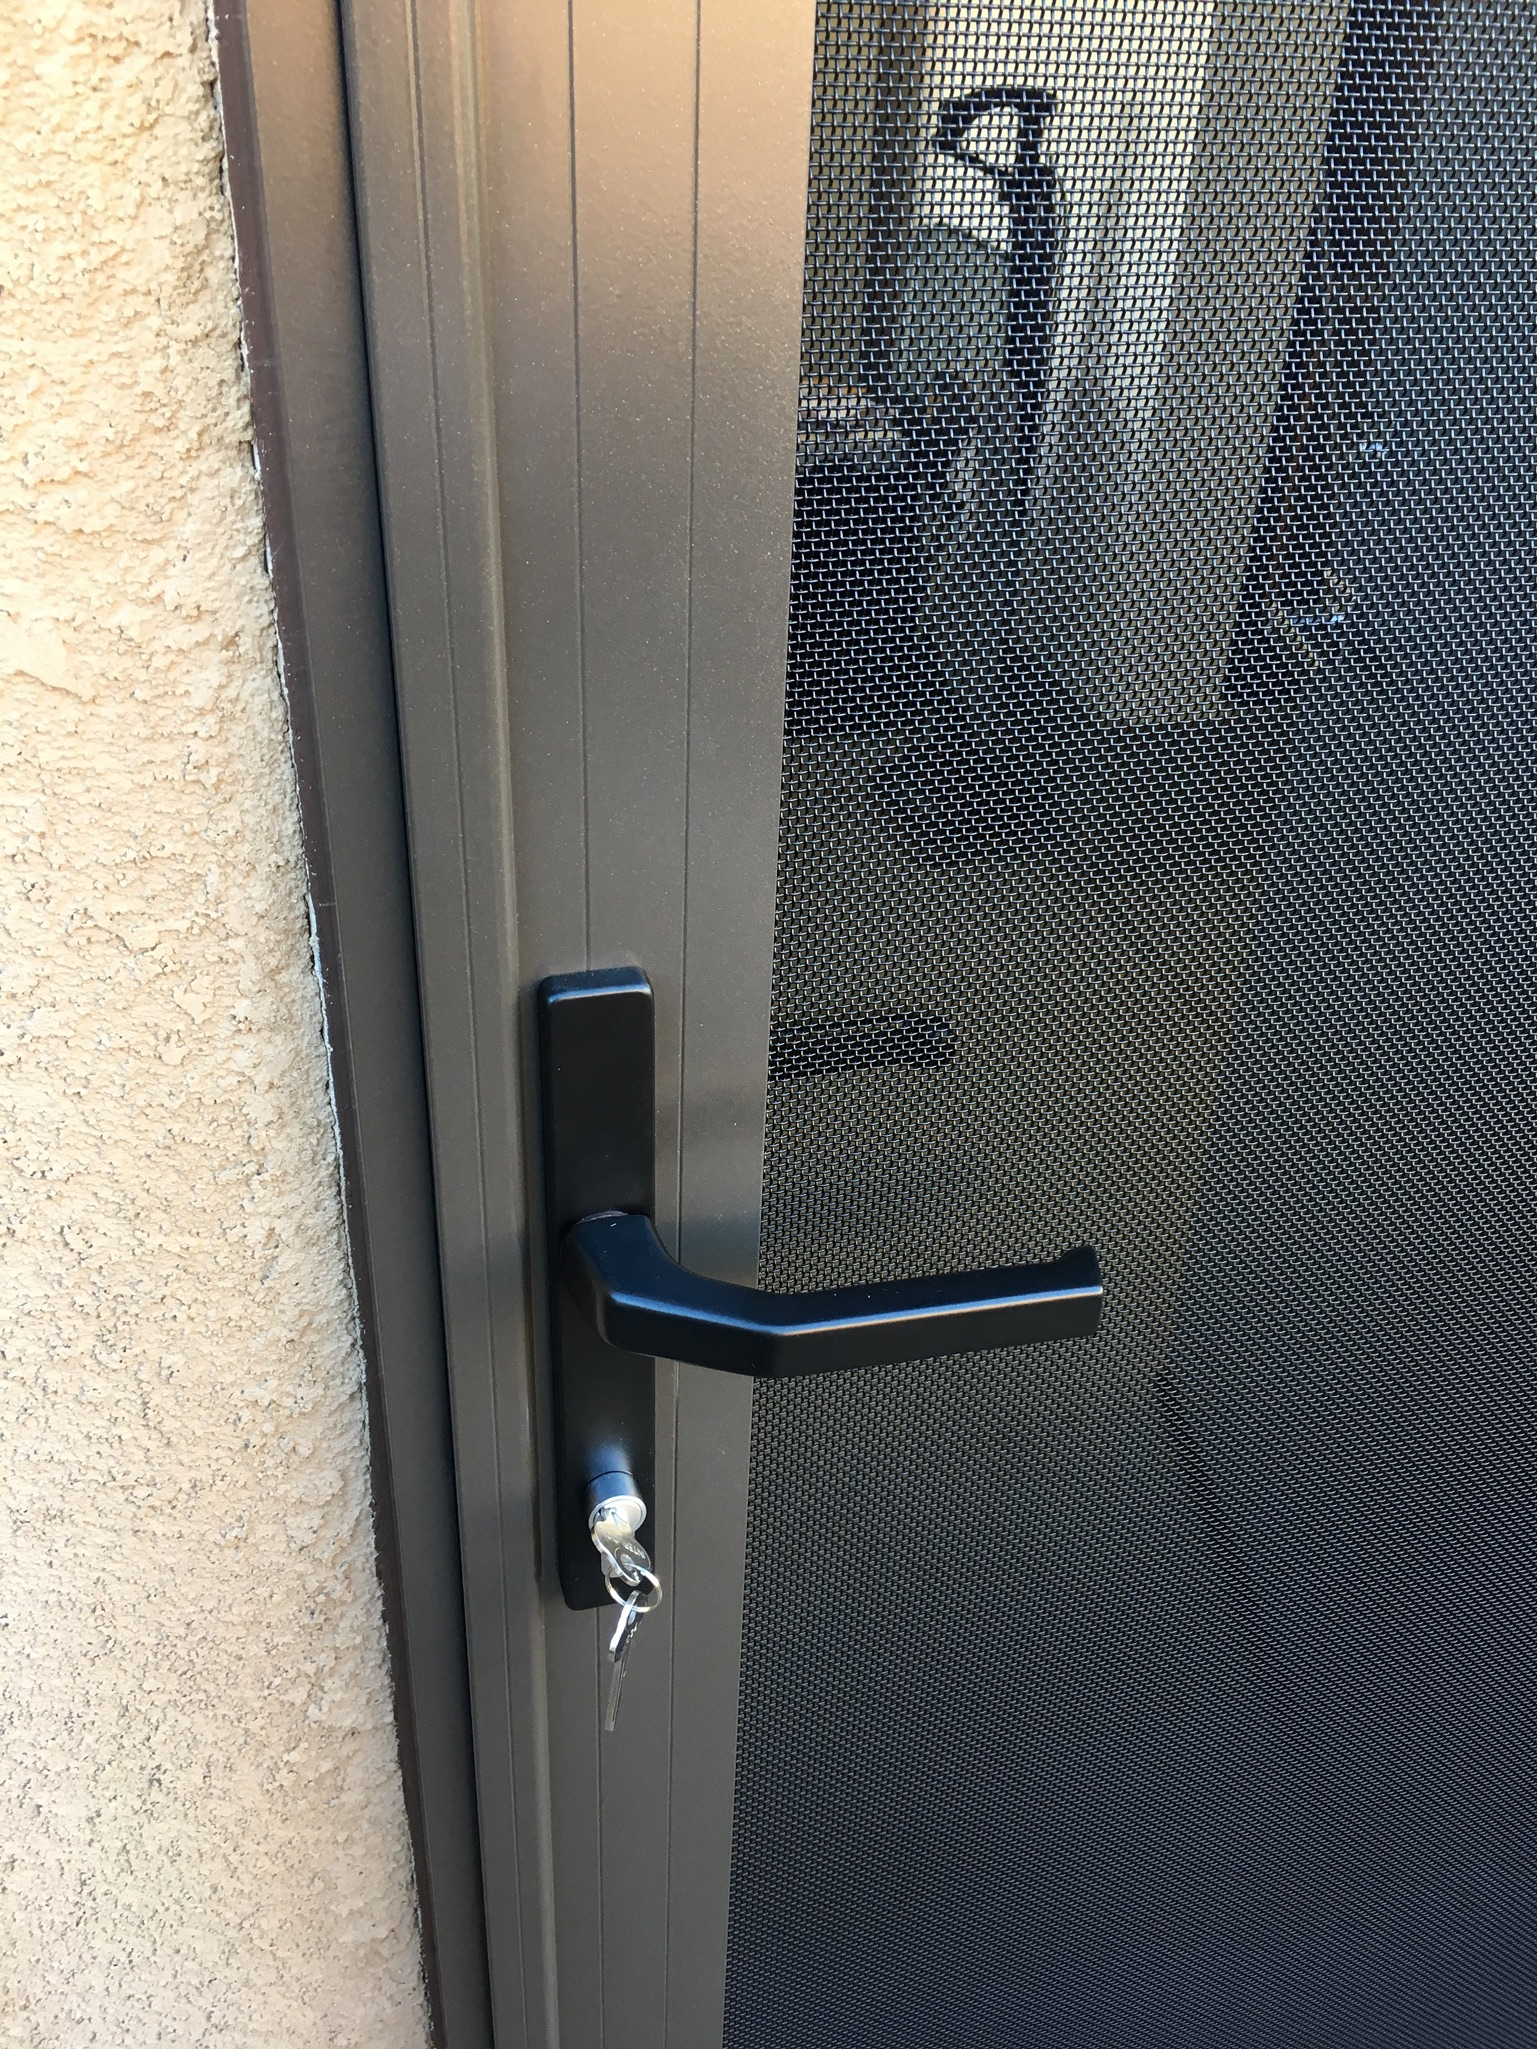 "32""x6'8"" bronze Guarda security screen door installed on side garage door in Summerly tract, Lake Elsinore - 3"